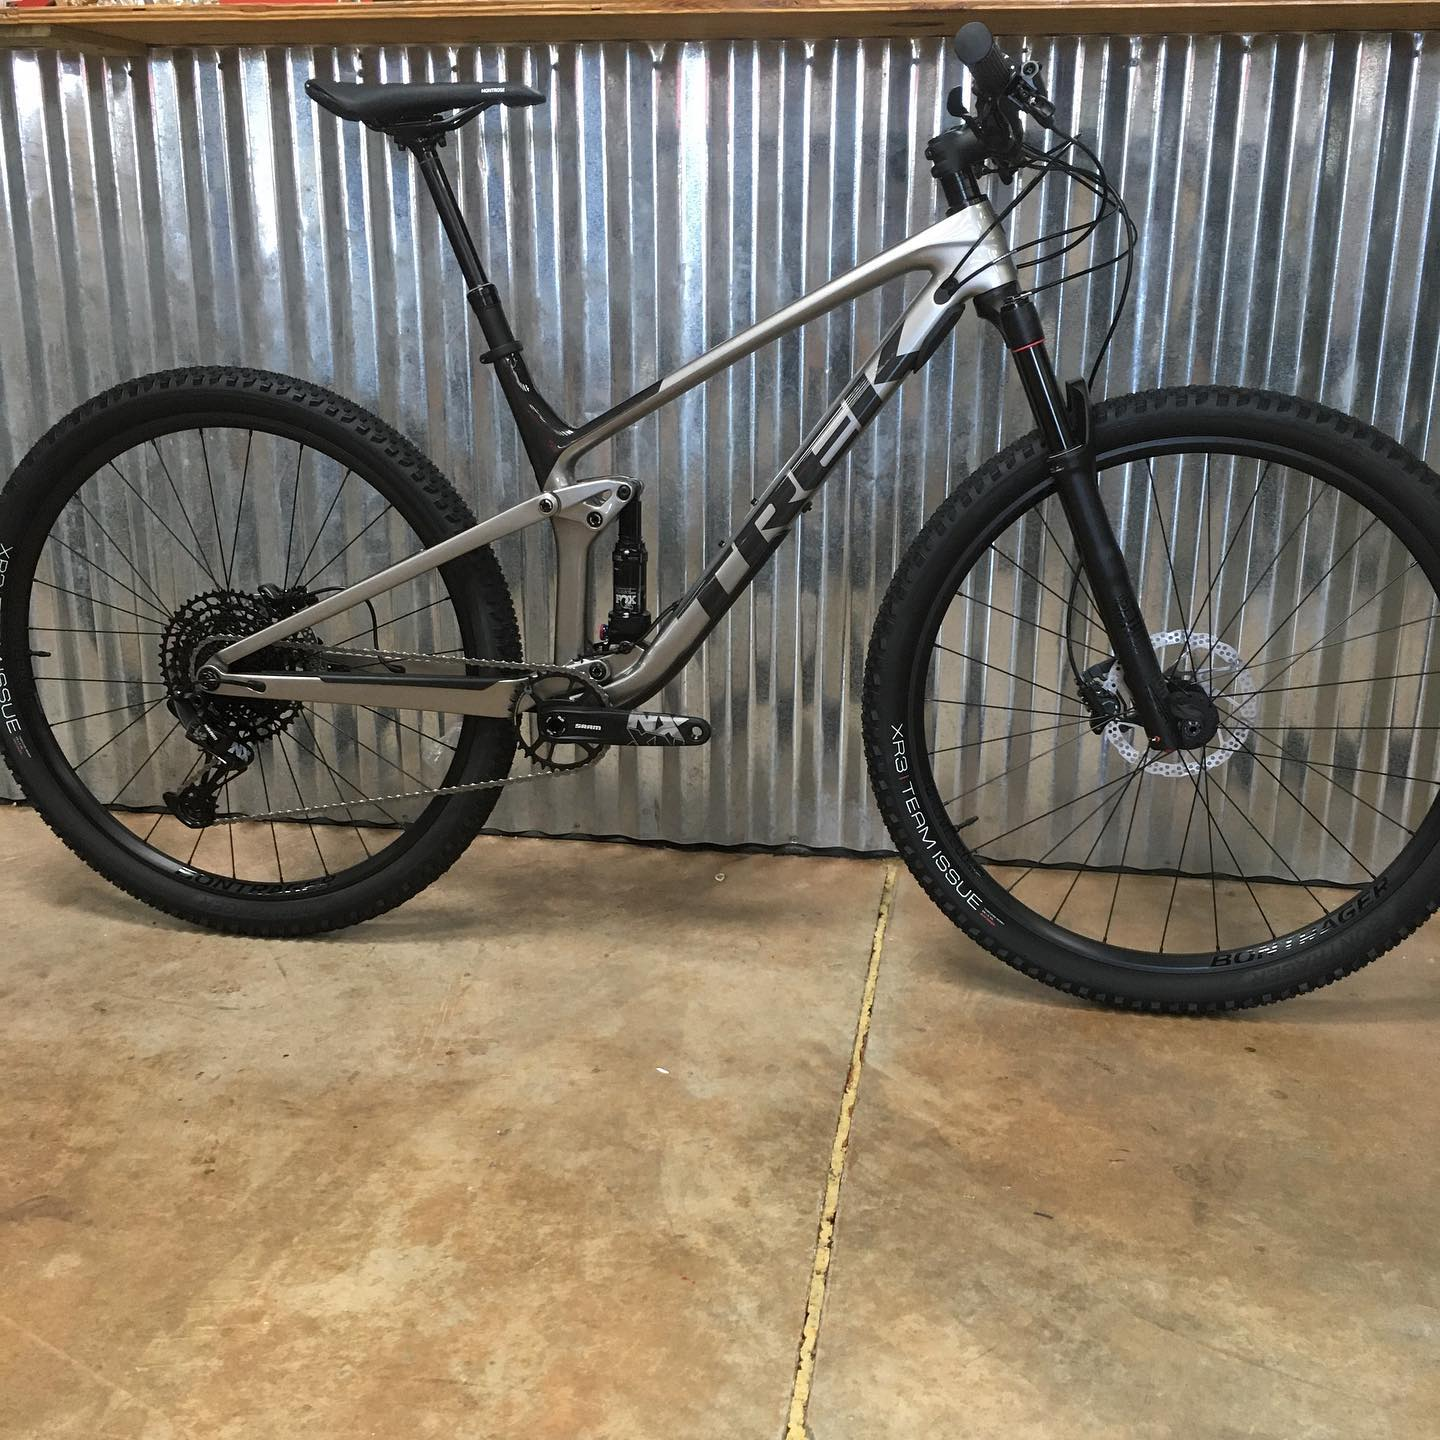 New arrival Trek Top Fuel 9.7. Size M/L. Full carbon frame with SRAM NX Eagle drivetrain. $3999.99. Call the shop for more details.